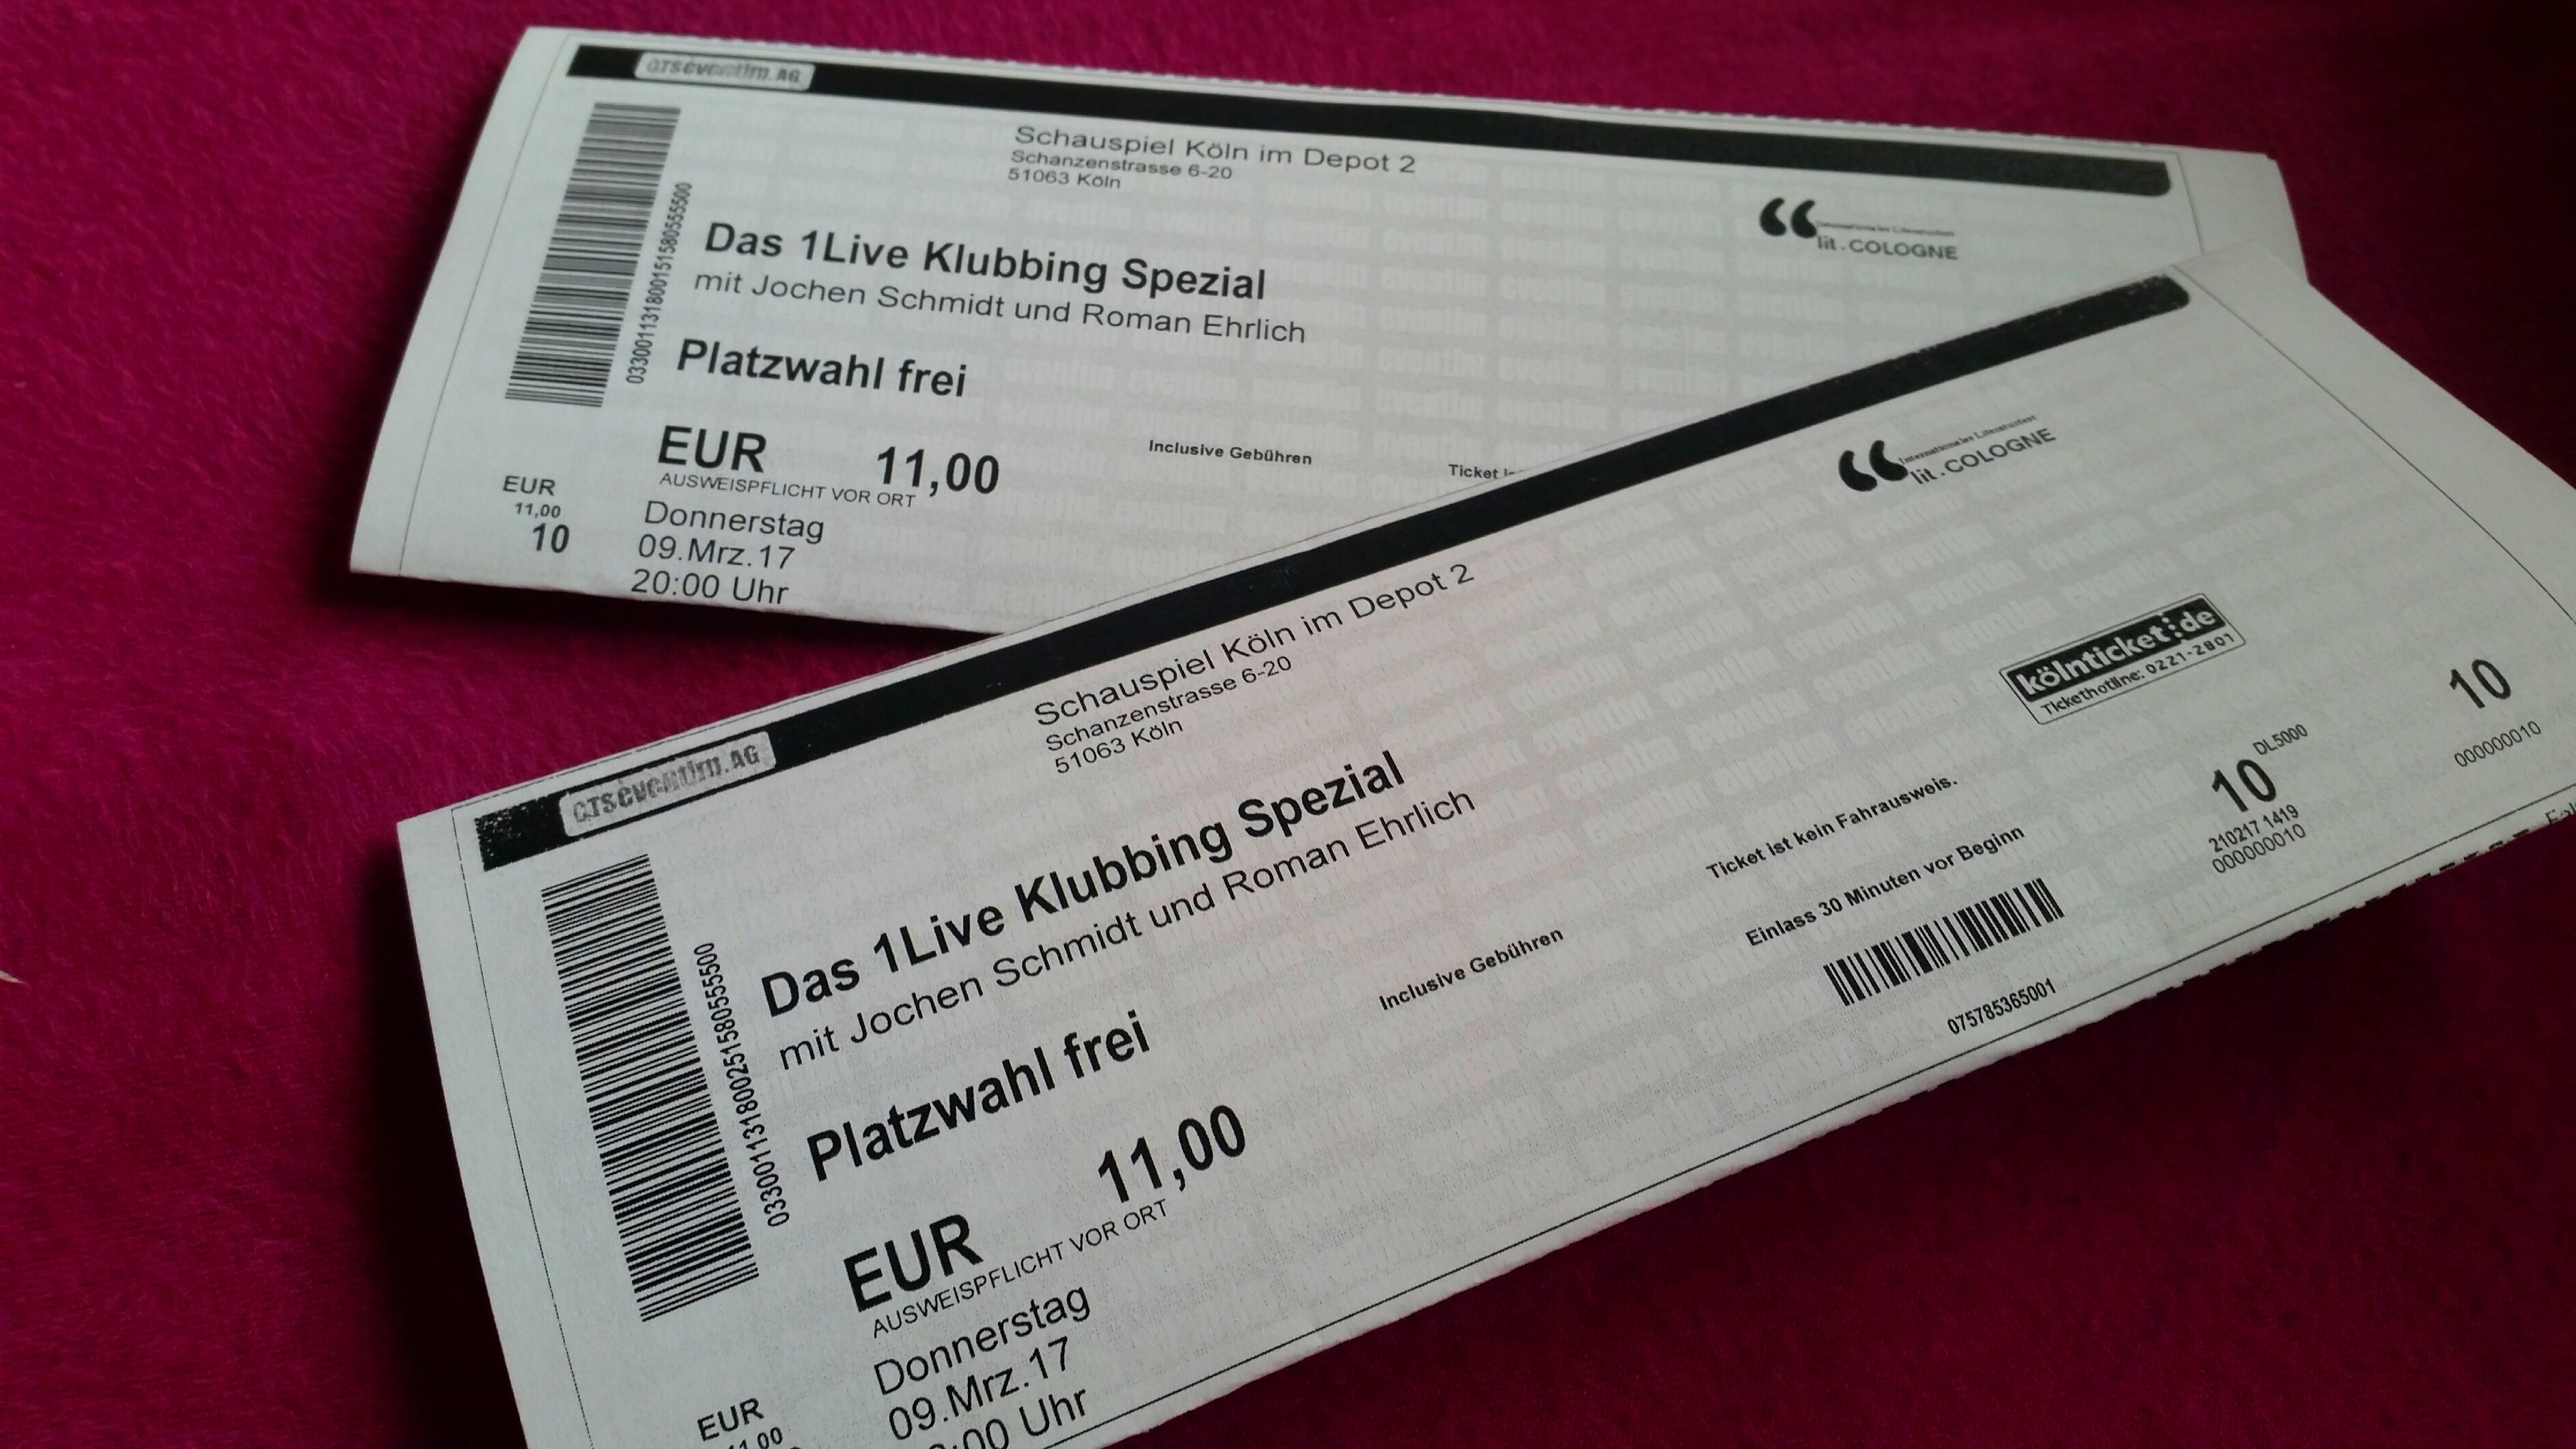 Lesung lit.cologne Tickets